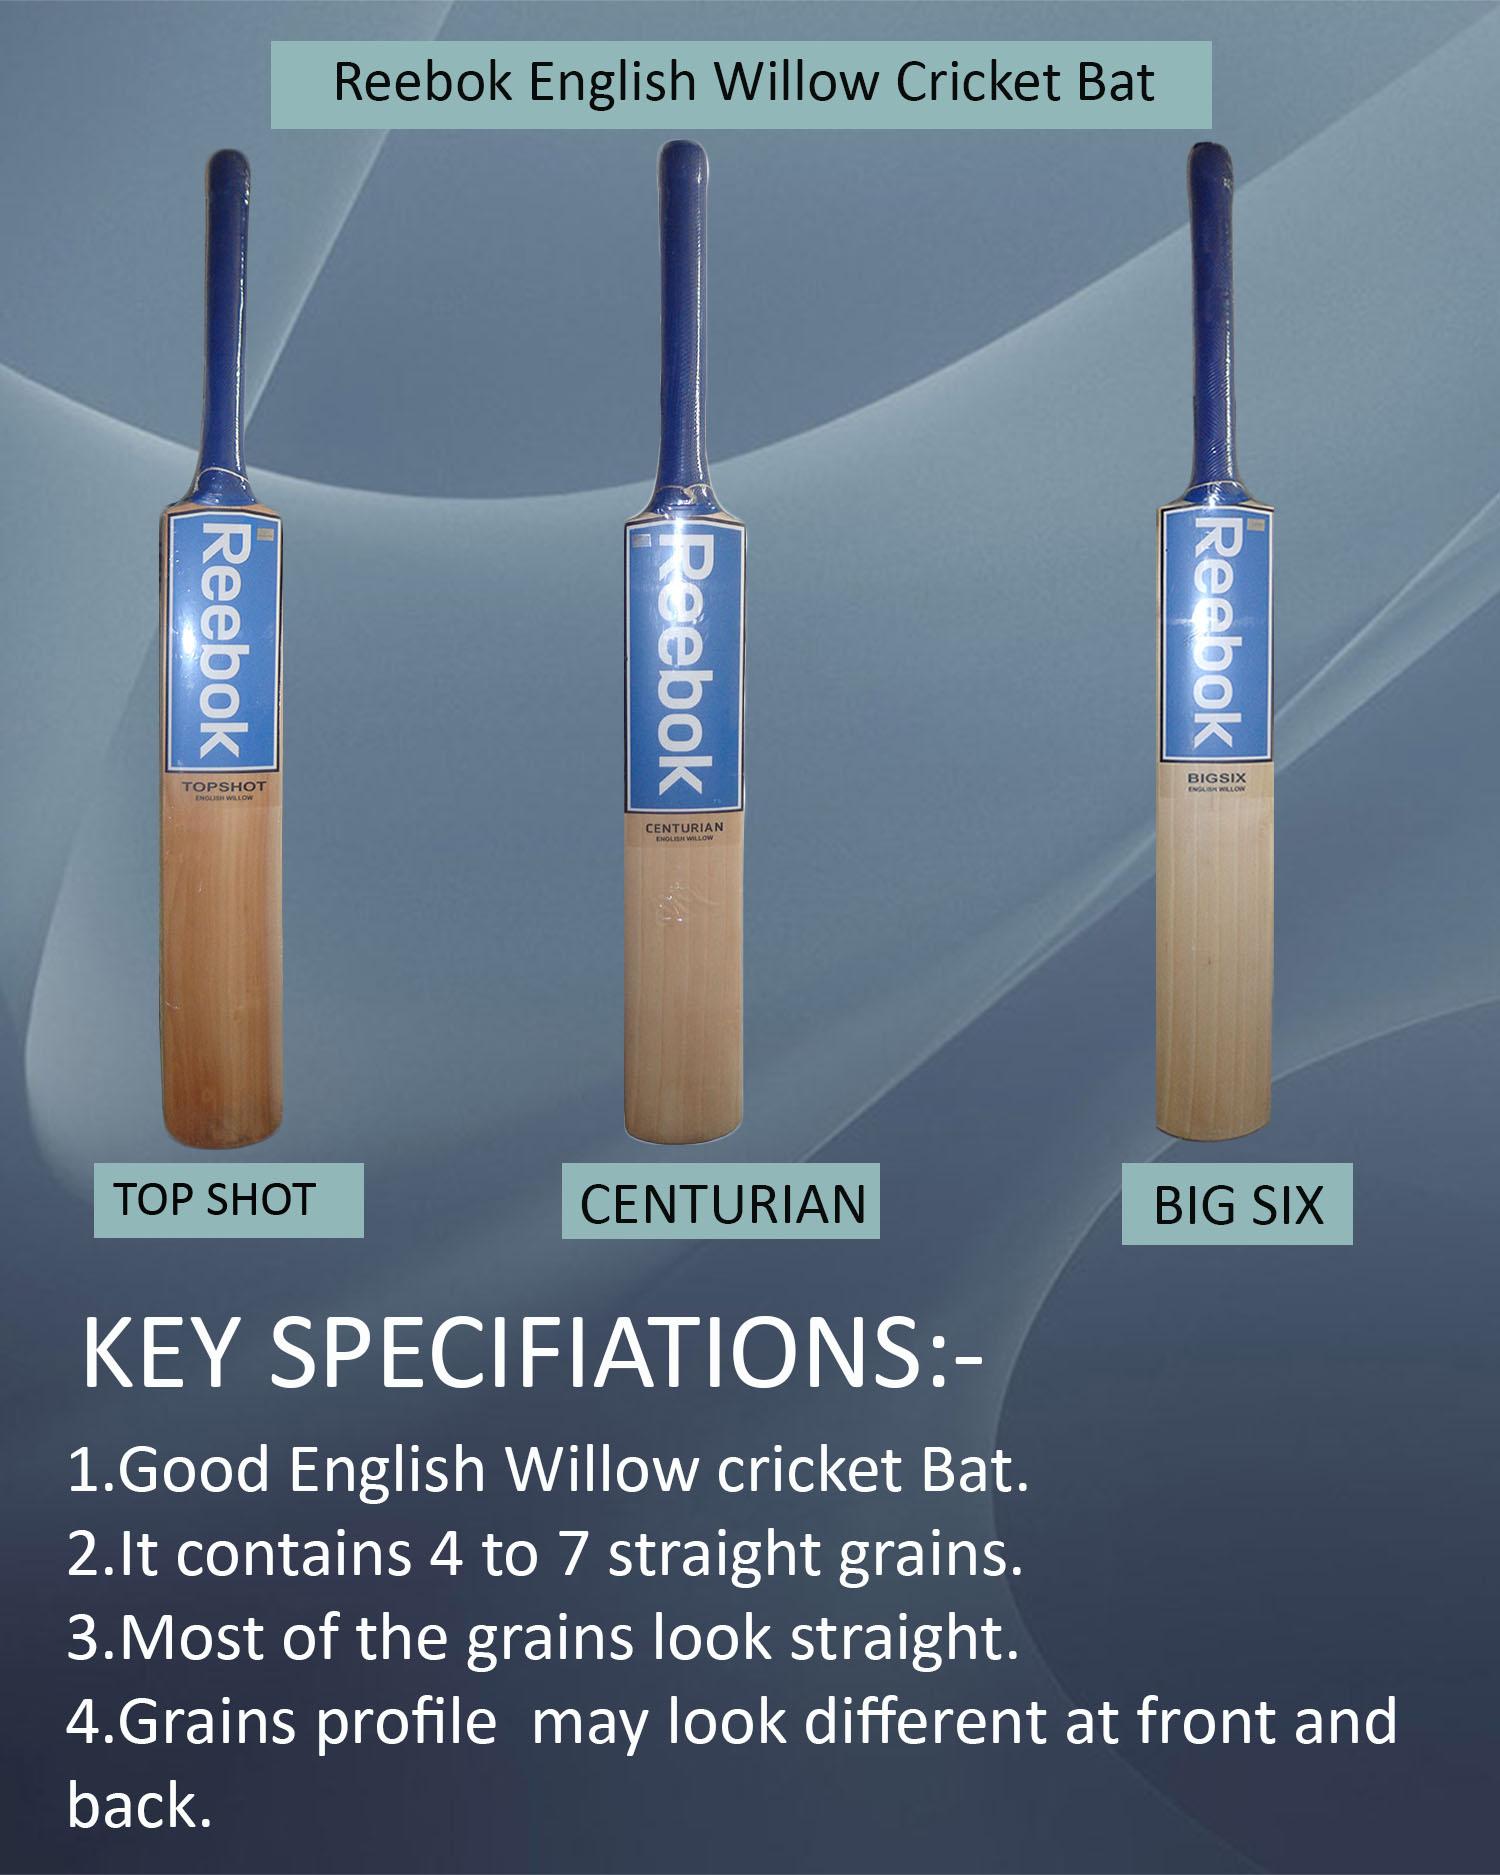 Reebok English Willow Cricket Bats